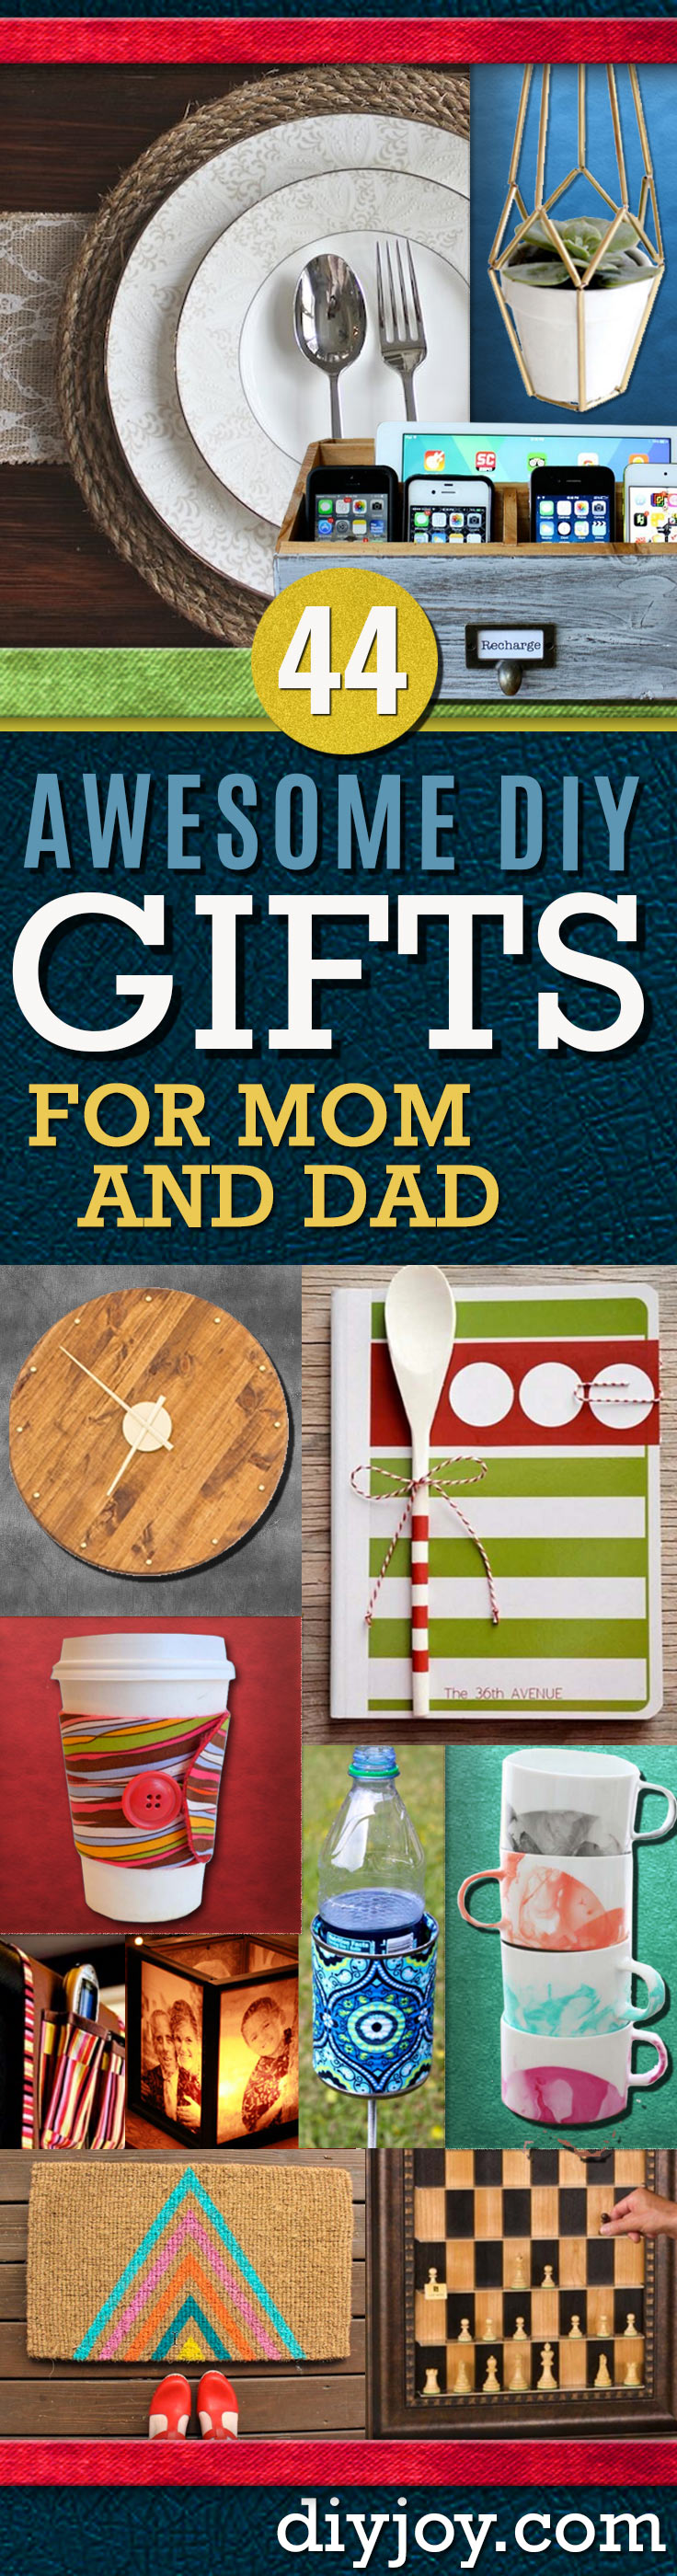 diy gifts for mom and dad homemade christmas gift ideas for your parents cool - Diy Christmas Gifts For Dad